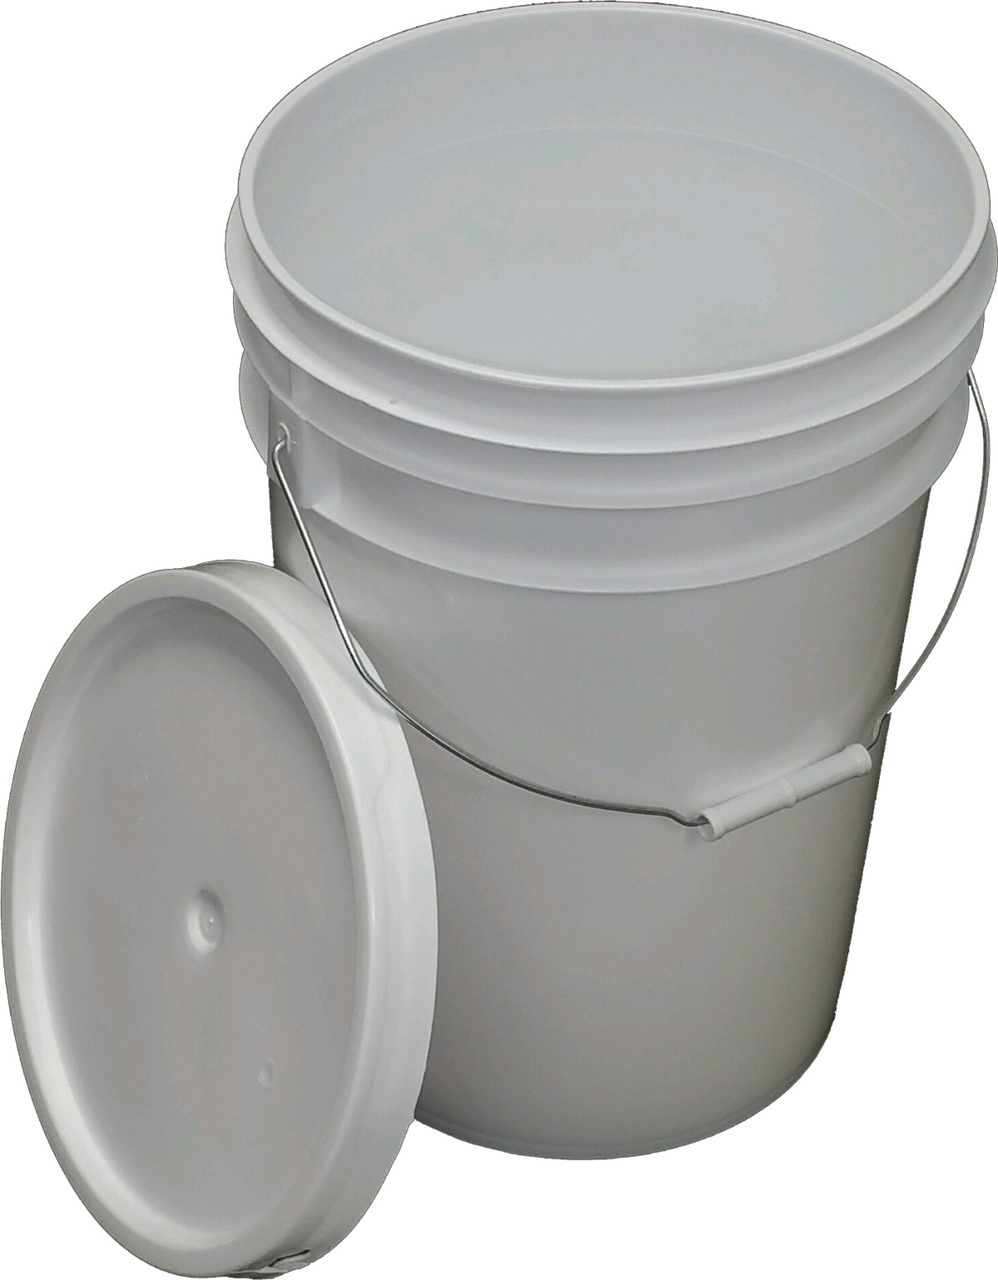 Storage Pail - 6 gallon - Biologyproducts com